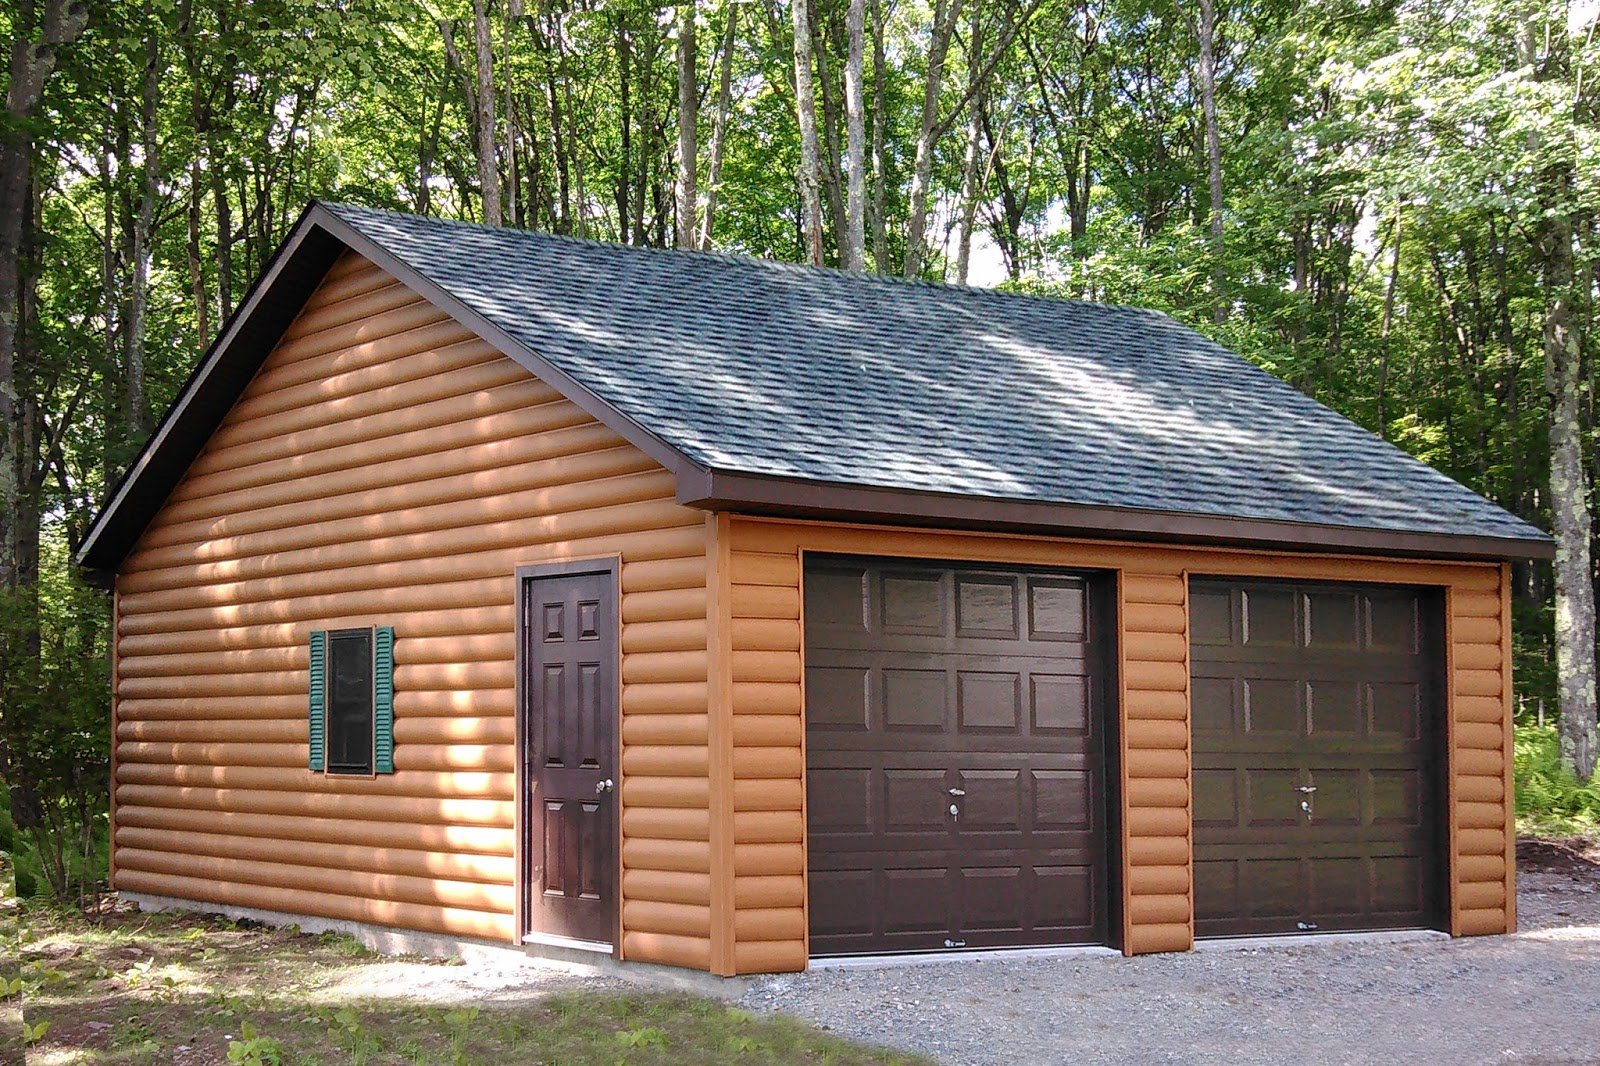 Prefab car garages for sale in pa nj ny ct de md va for Garage plans with storage